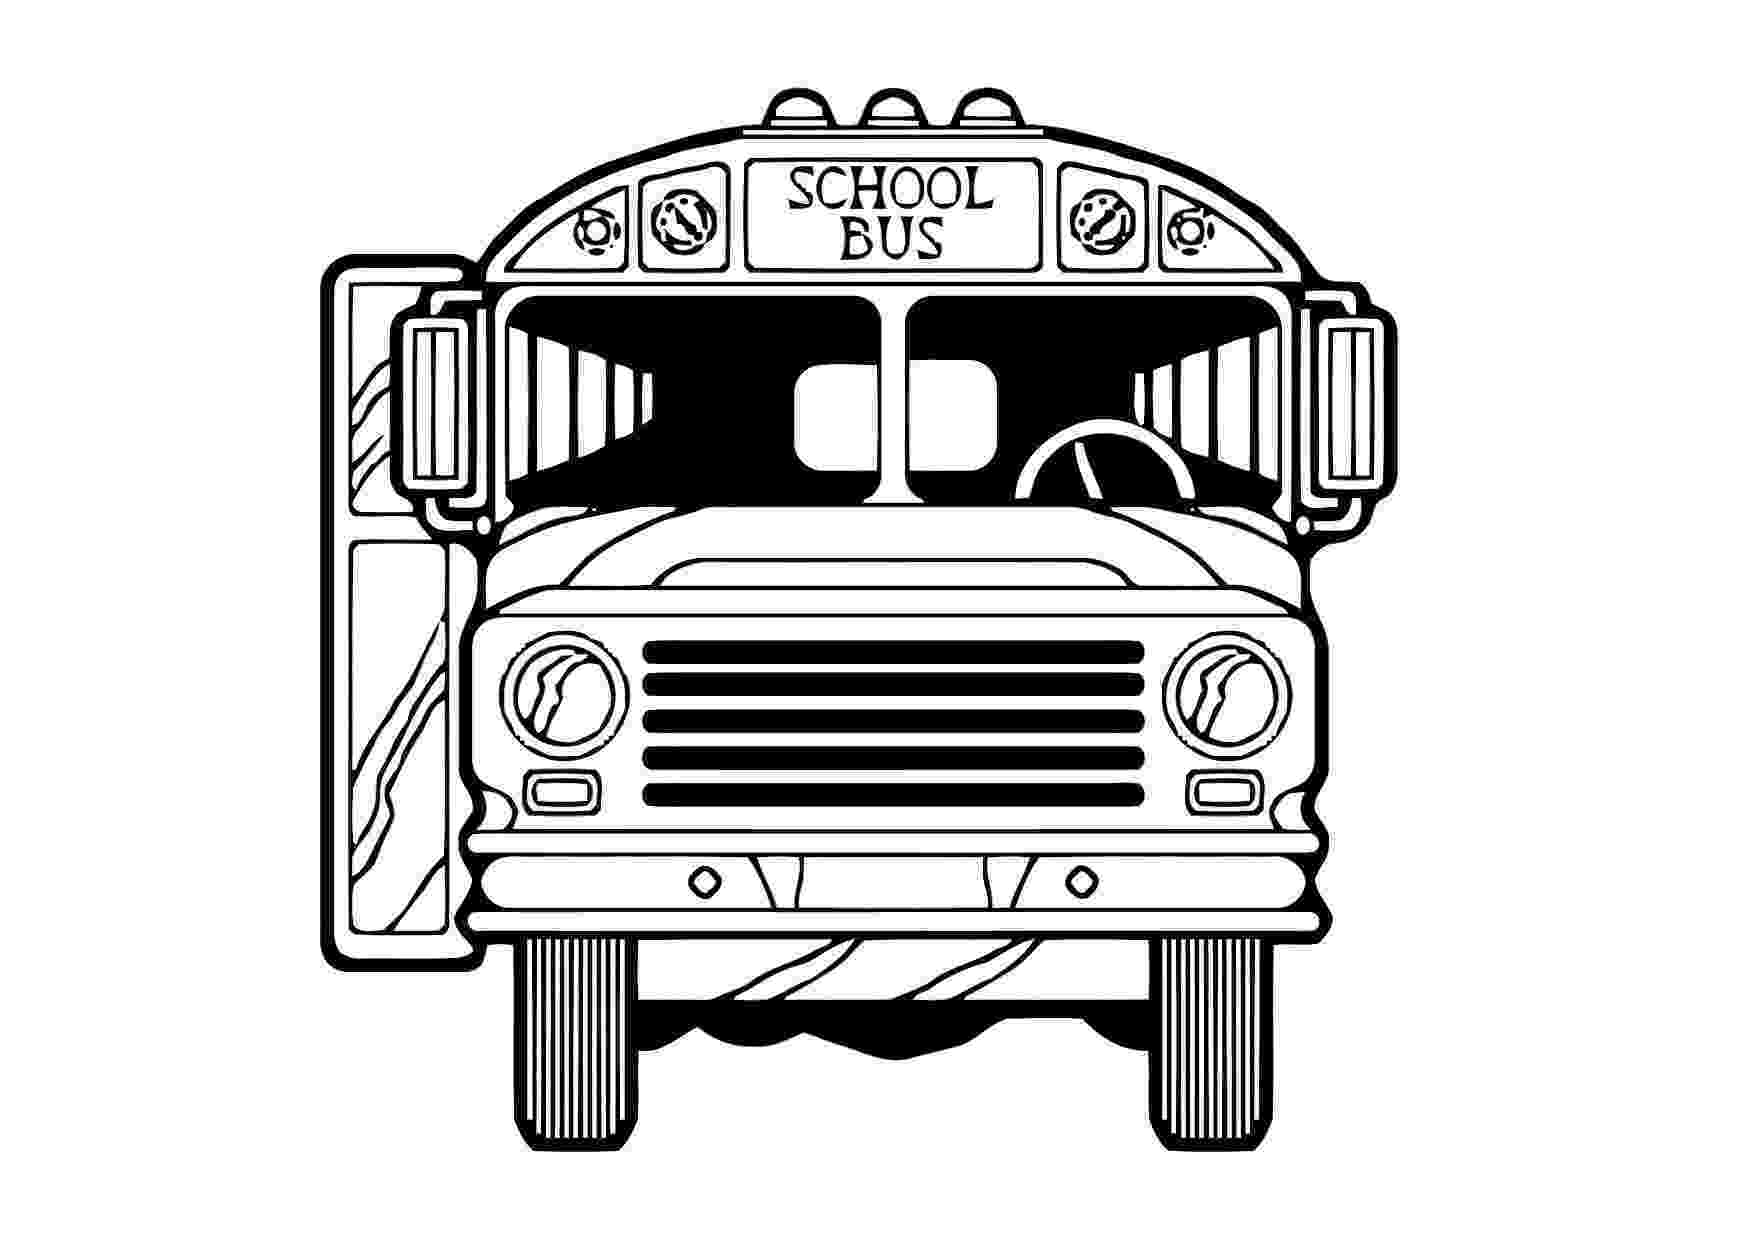 bus coloring pages printable school bus coloring page for kids cool2bkids coloring bus pages 1 1